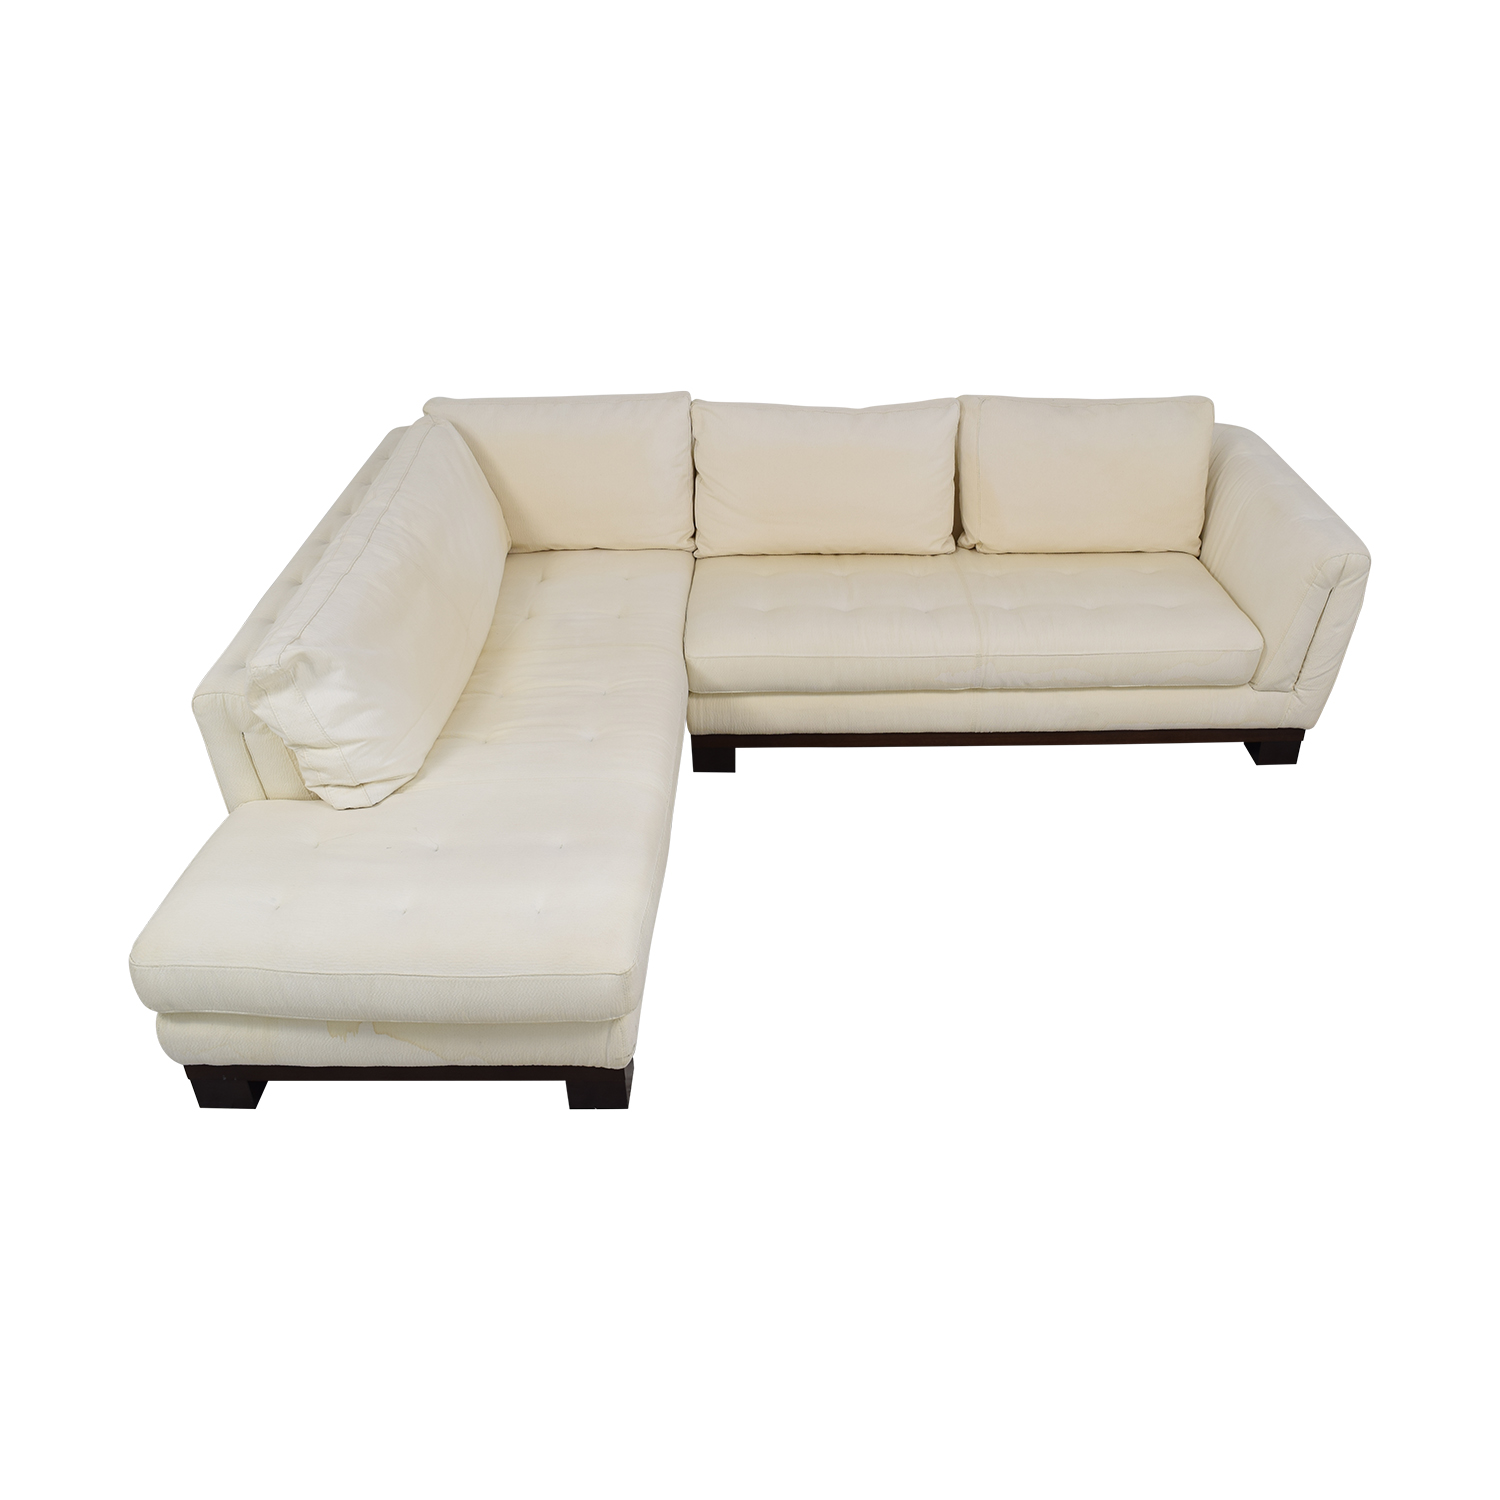 Maurice Villency Signed Tufted Sectional Sofa with Ottomans sale